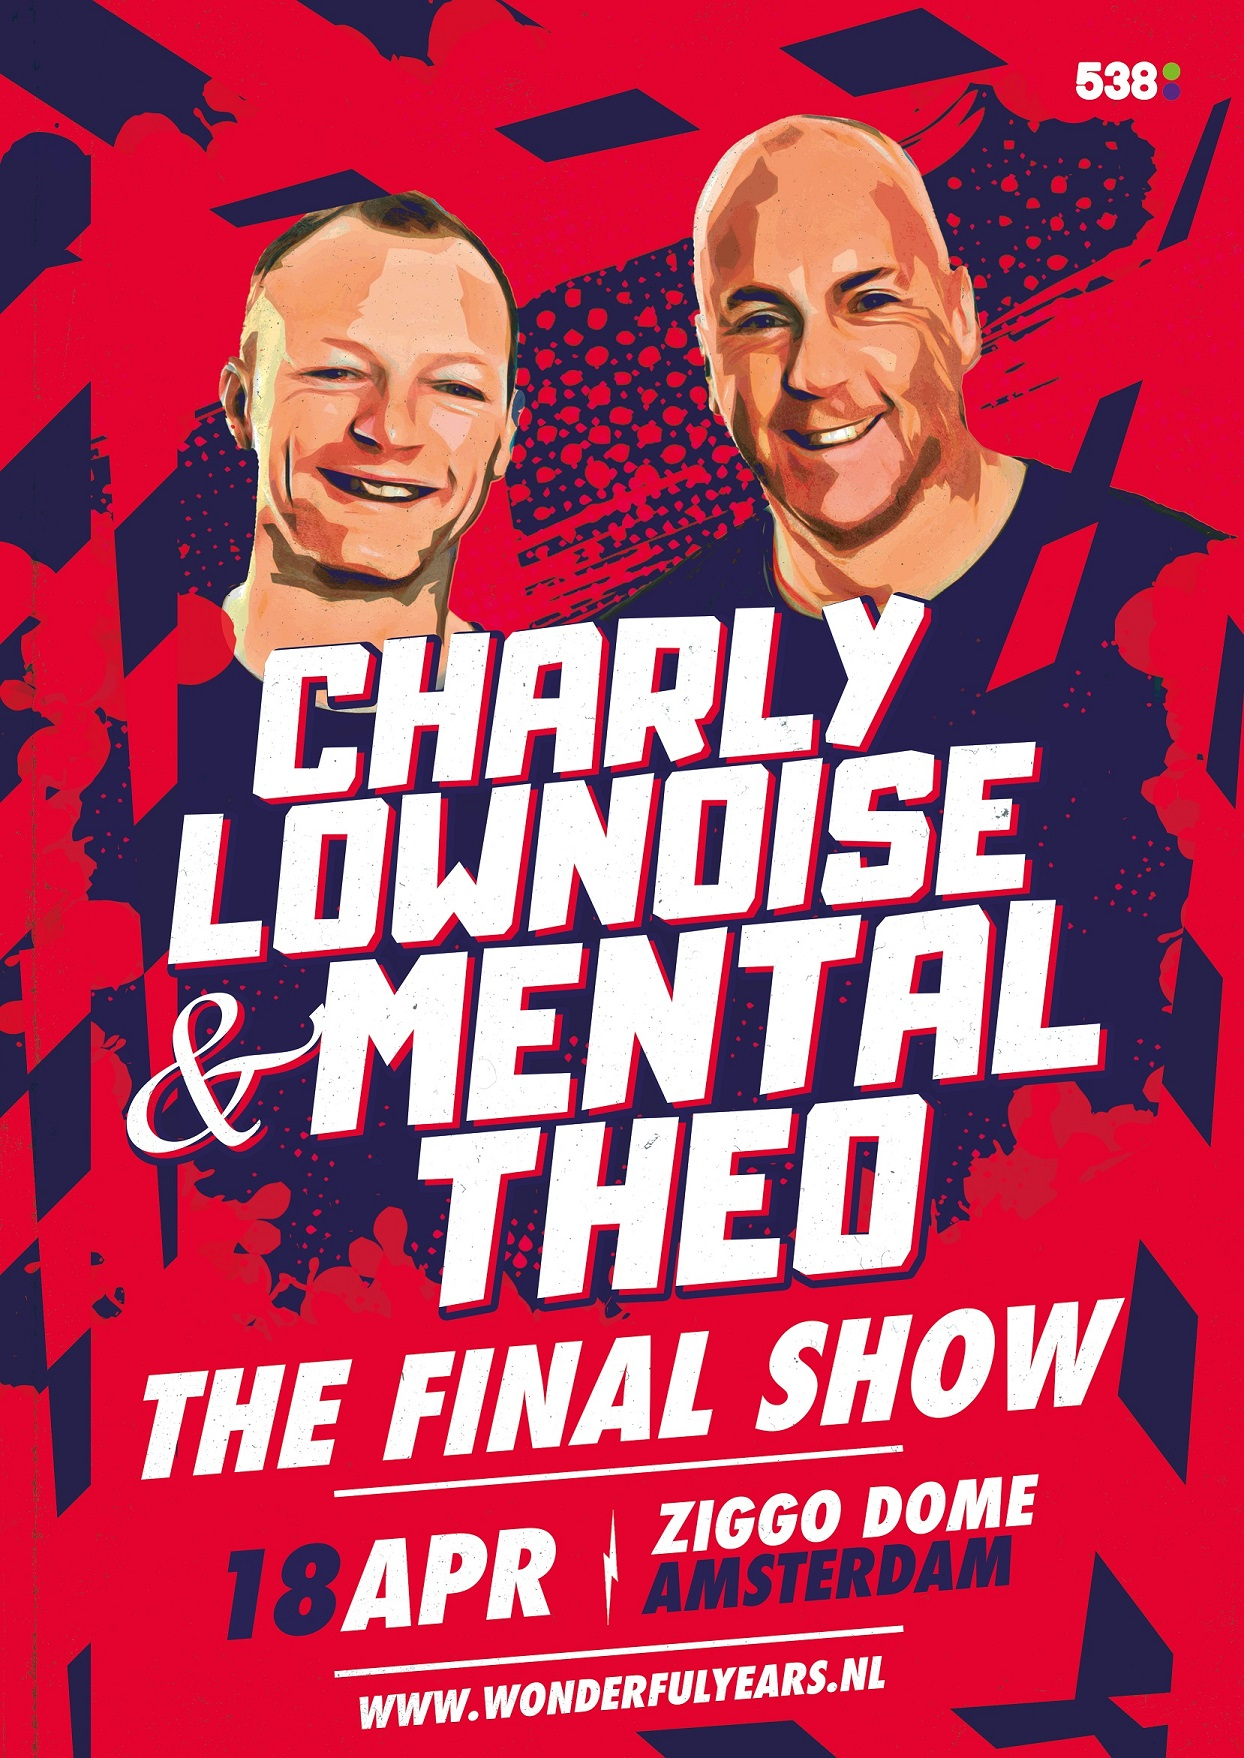 Charly Lownoise & Mental Theo The Final Show Ziggo Dome Amsterdam